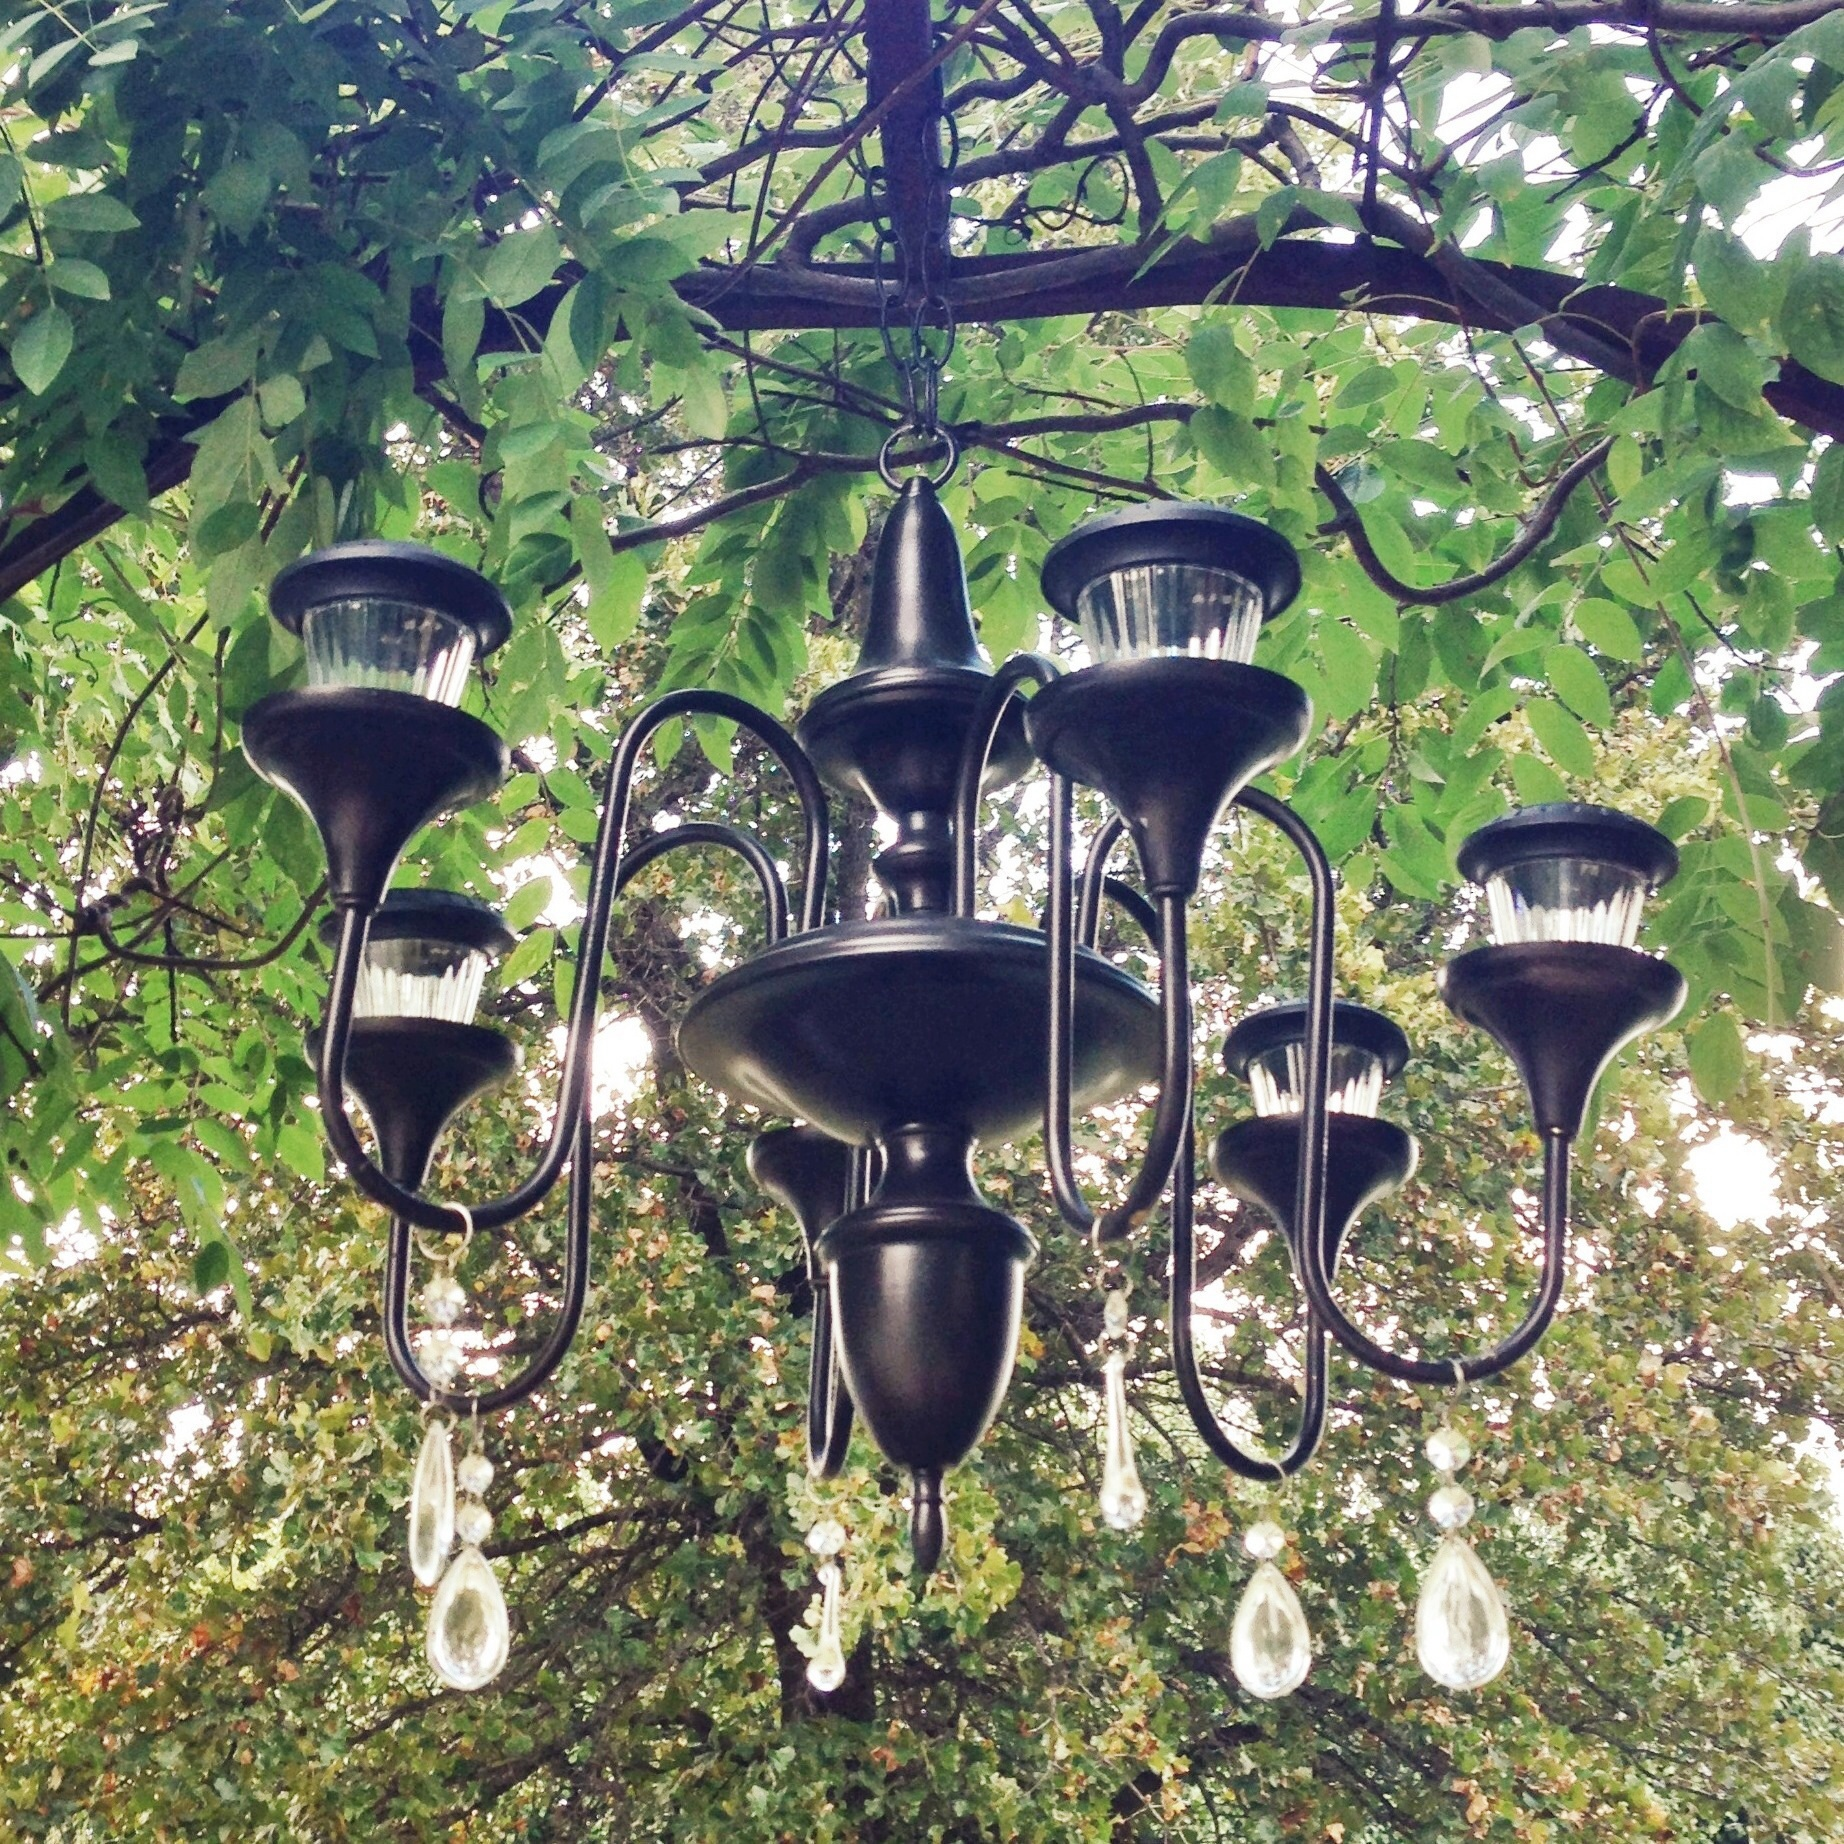 Solarlicht Garten Garden Chandelier Leaving Our Trail